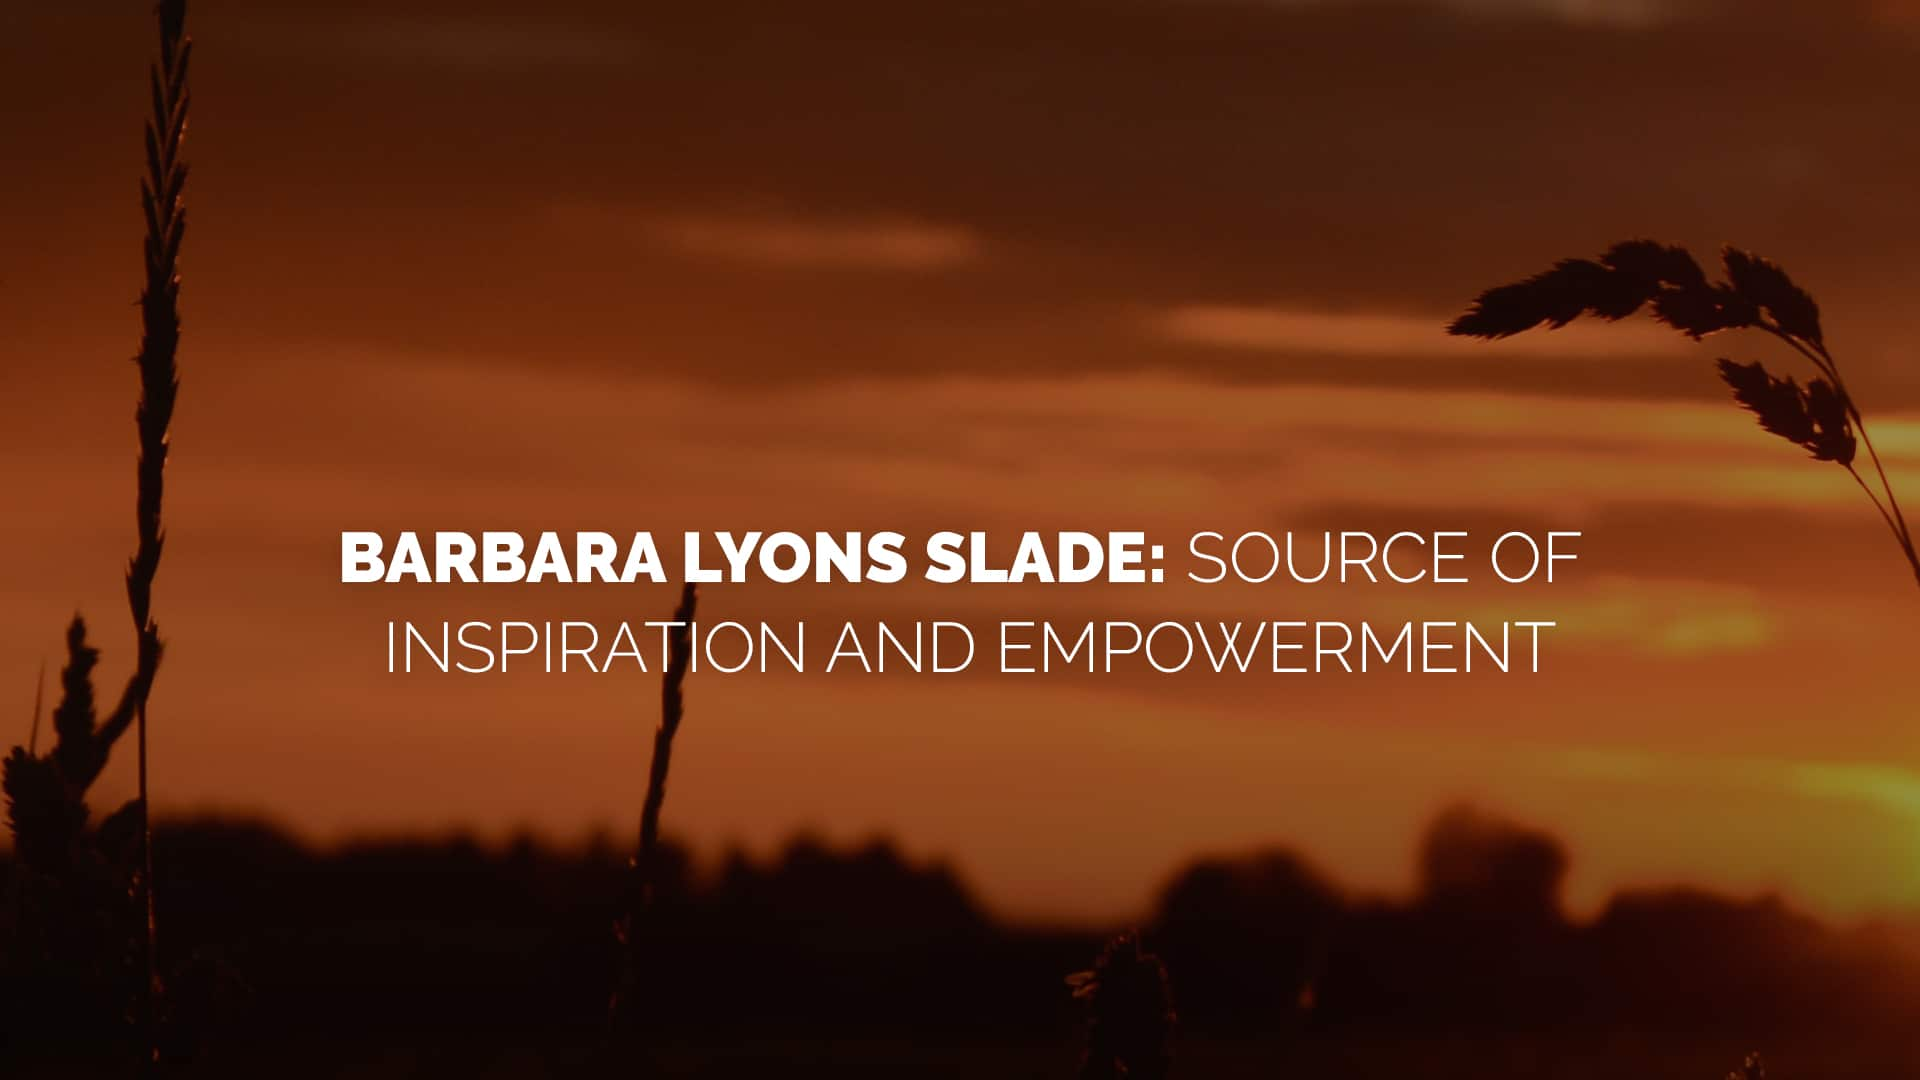 Barbara Lyons Slade Source of Inspiration and Empowerment banner